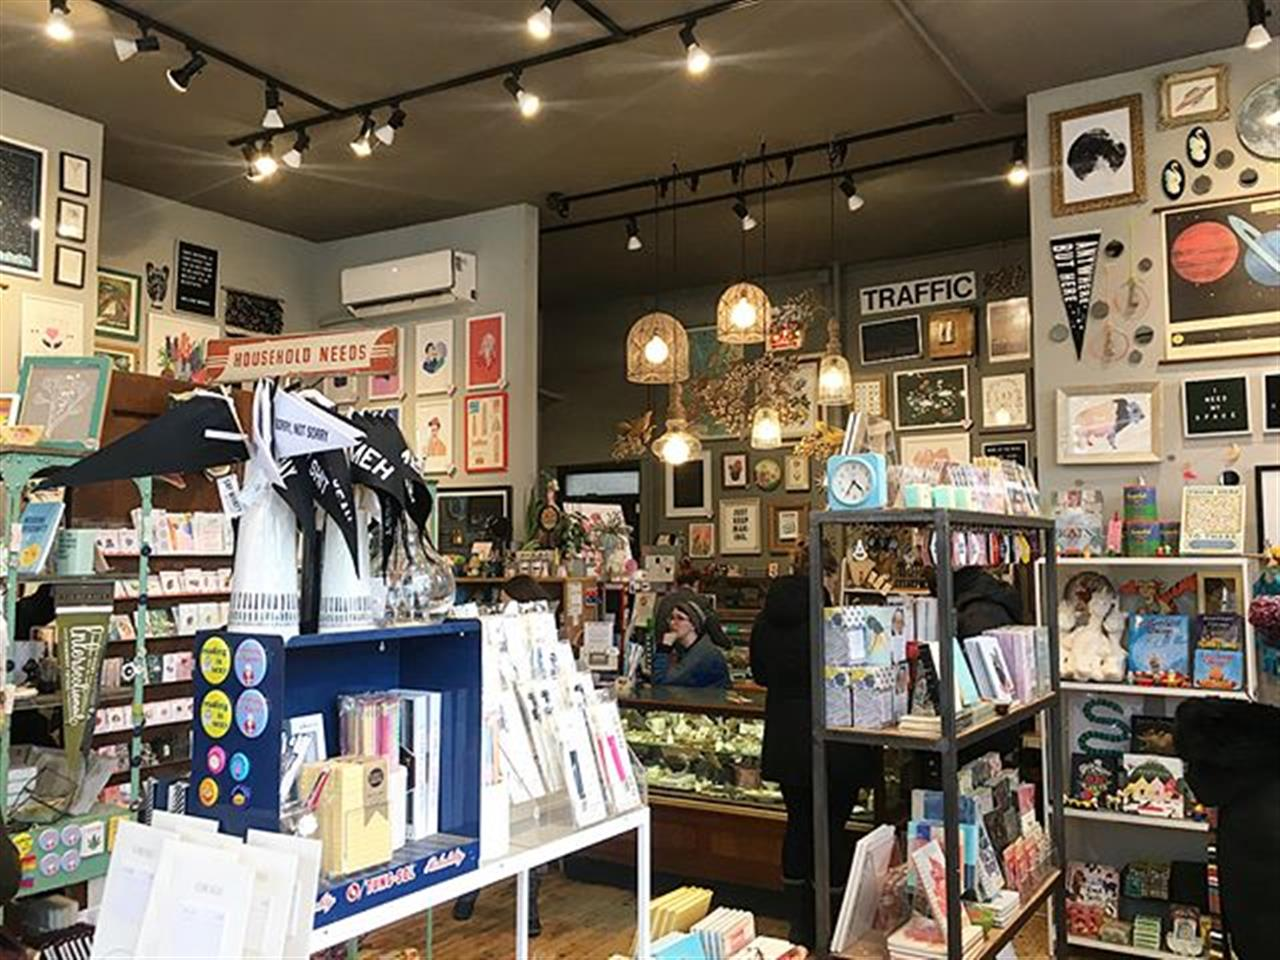 One of our favorite neighborhood spots for finding something uniquely #Chicago.  #Foursided #foursidedchicago #shoplocal #boutique #shopping #lakeview #lakevieweast #gifts #neighborhood #bairdwarner #leadingrelocal #art #vintage #artvintage